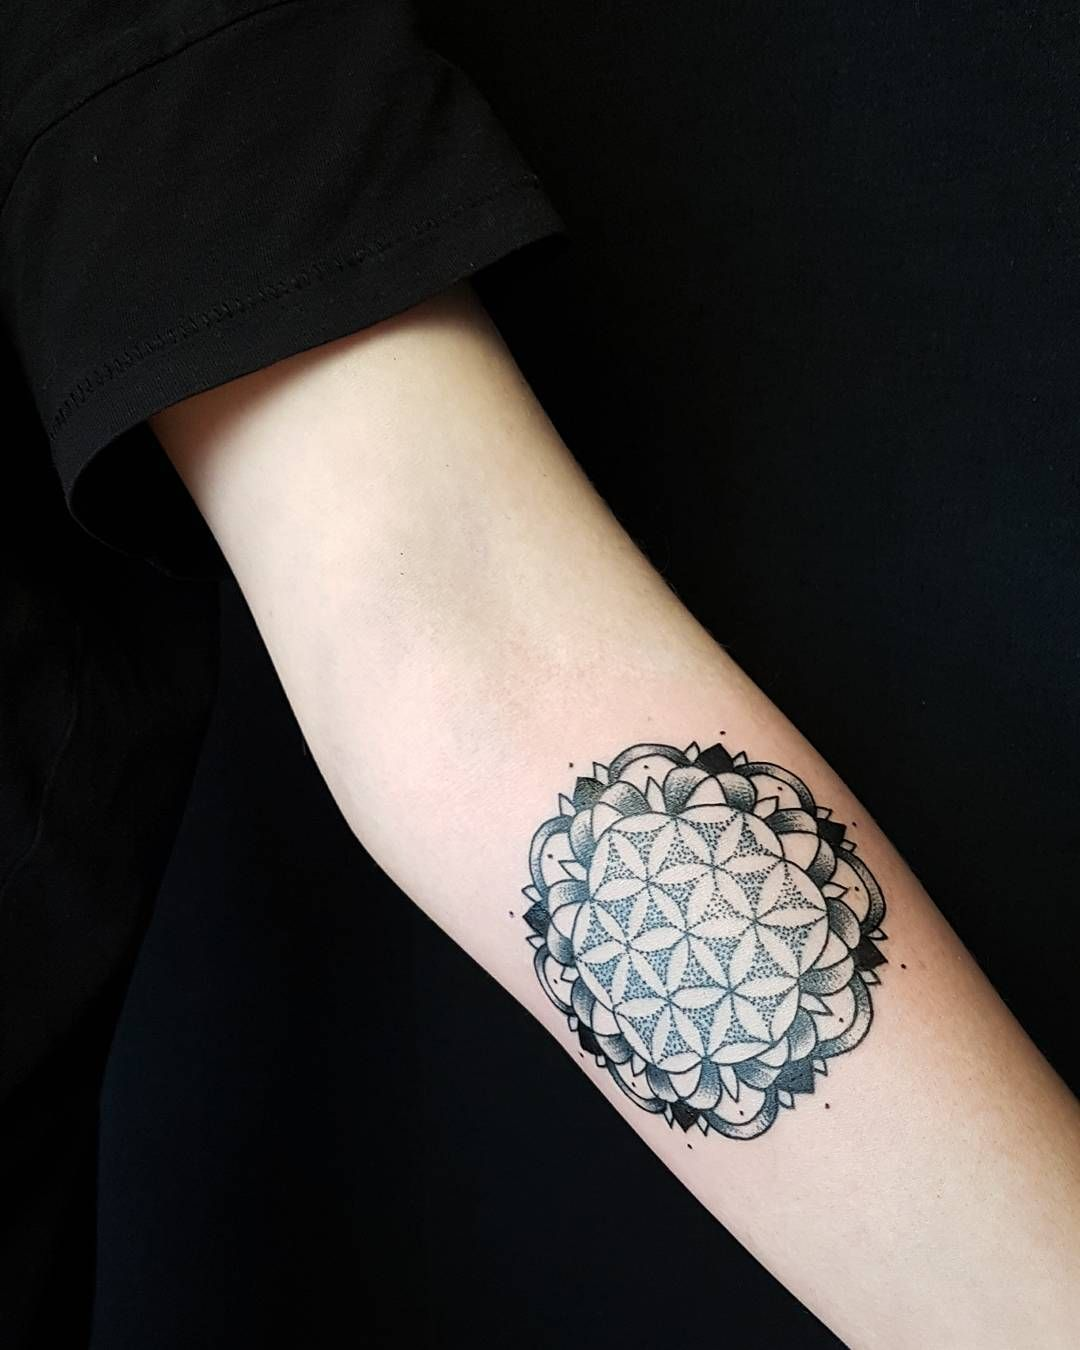 35 amazing tattoos for women with meaning - 35 Cool Flower Of Life Tattoo Ideas The Geometric Pattern That Holds The Secrets Check